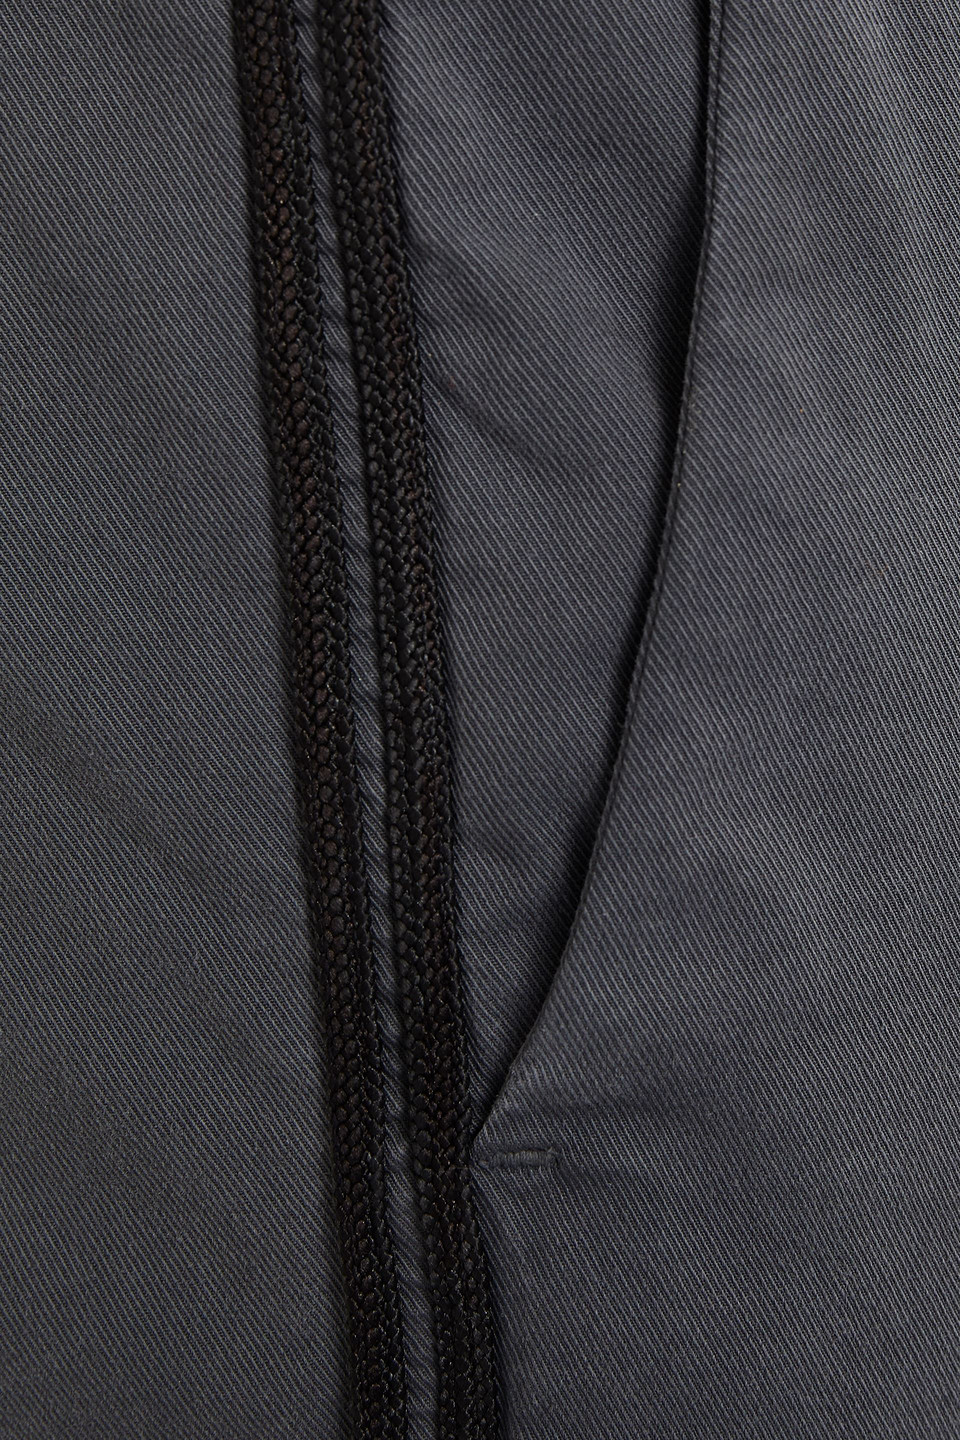 Nili Lotan | Nili Lotan Woman Cropped Braid-trimmed Cotton-blend Twill Tapered Pants Dark Gray | Clouty